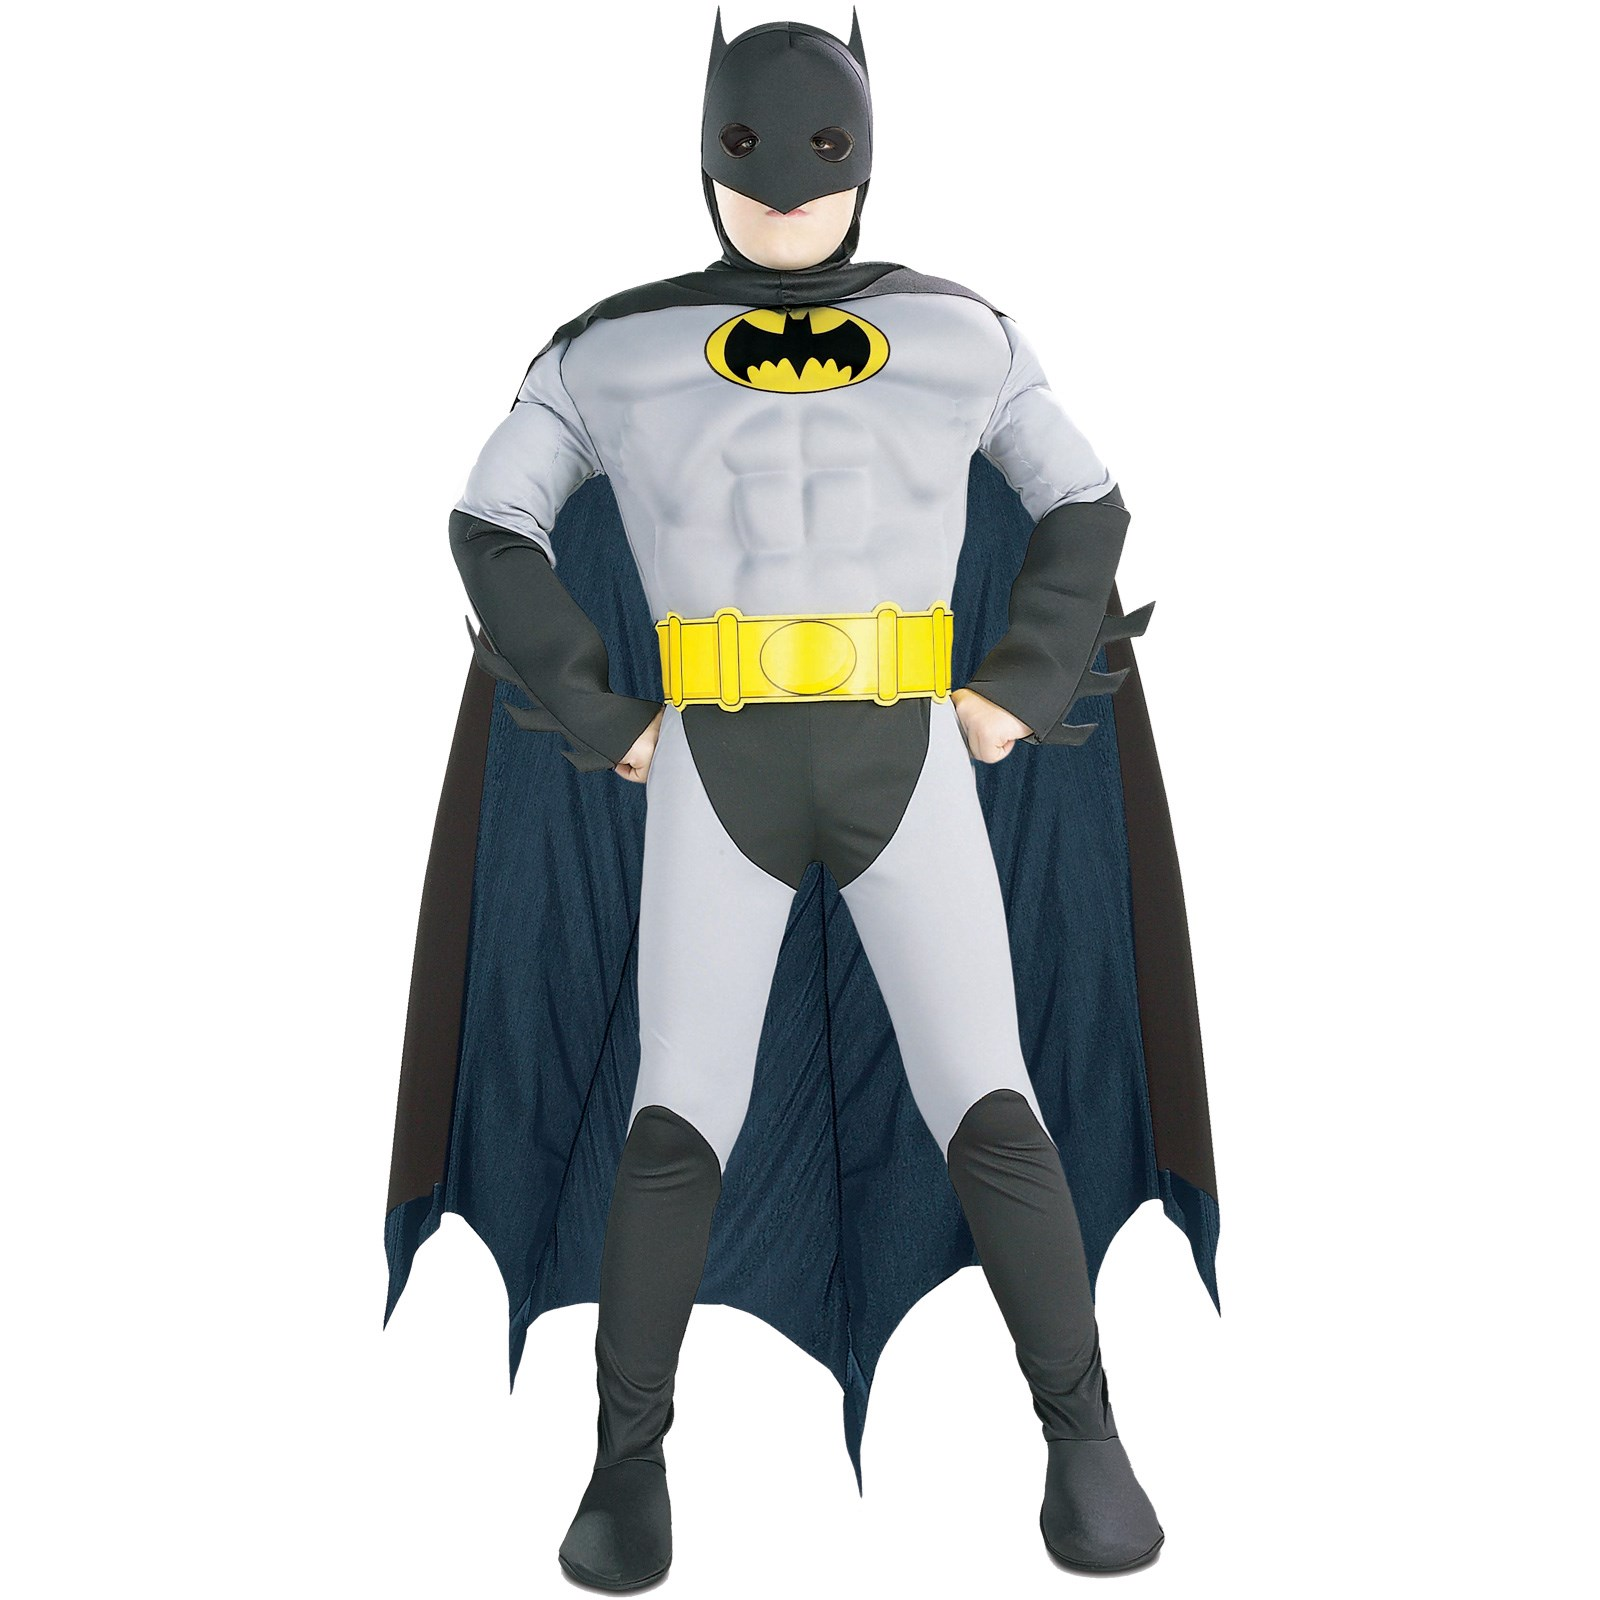 Batman Toddler / Child Costume 2-4